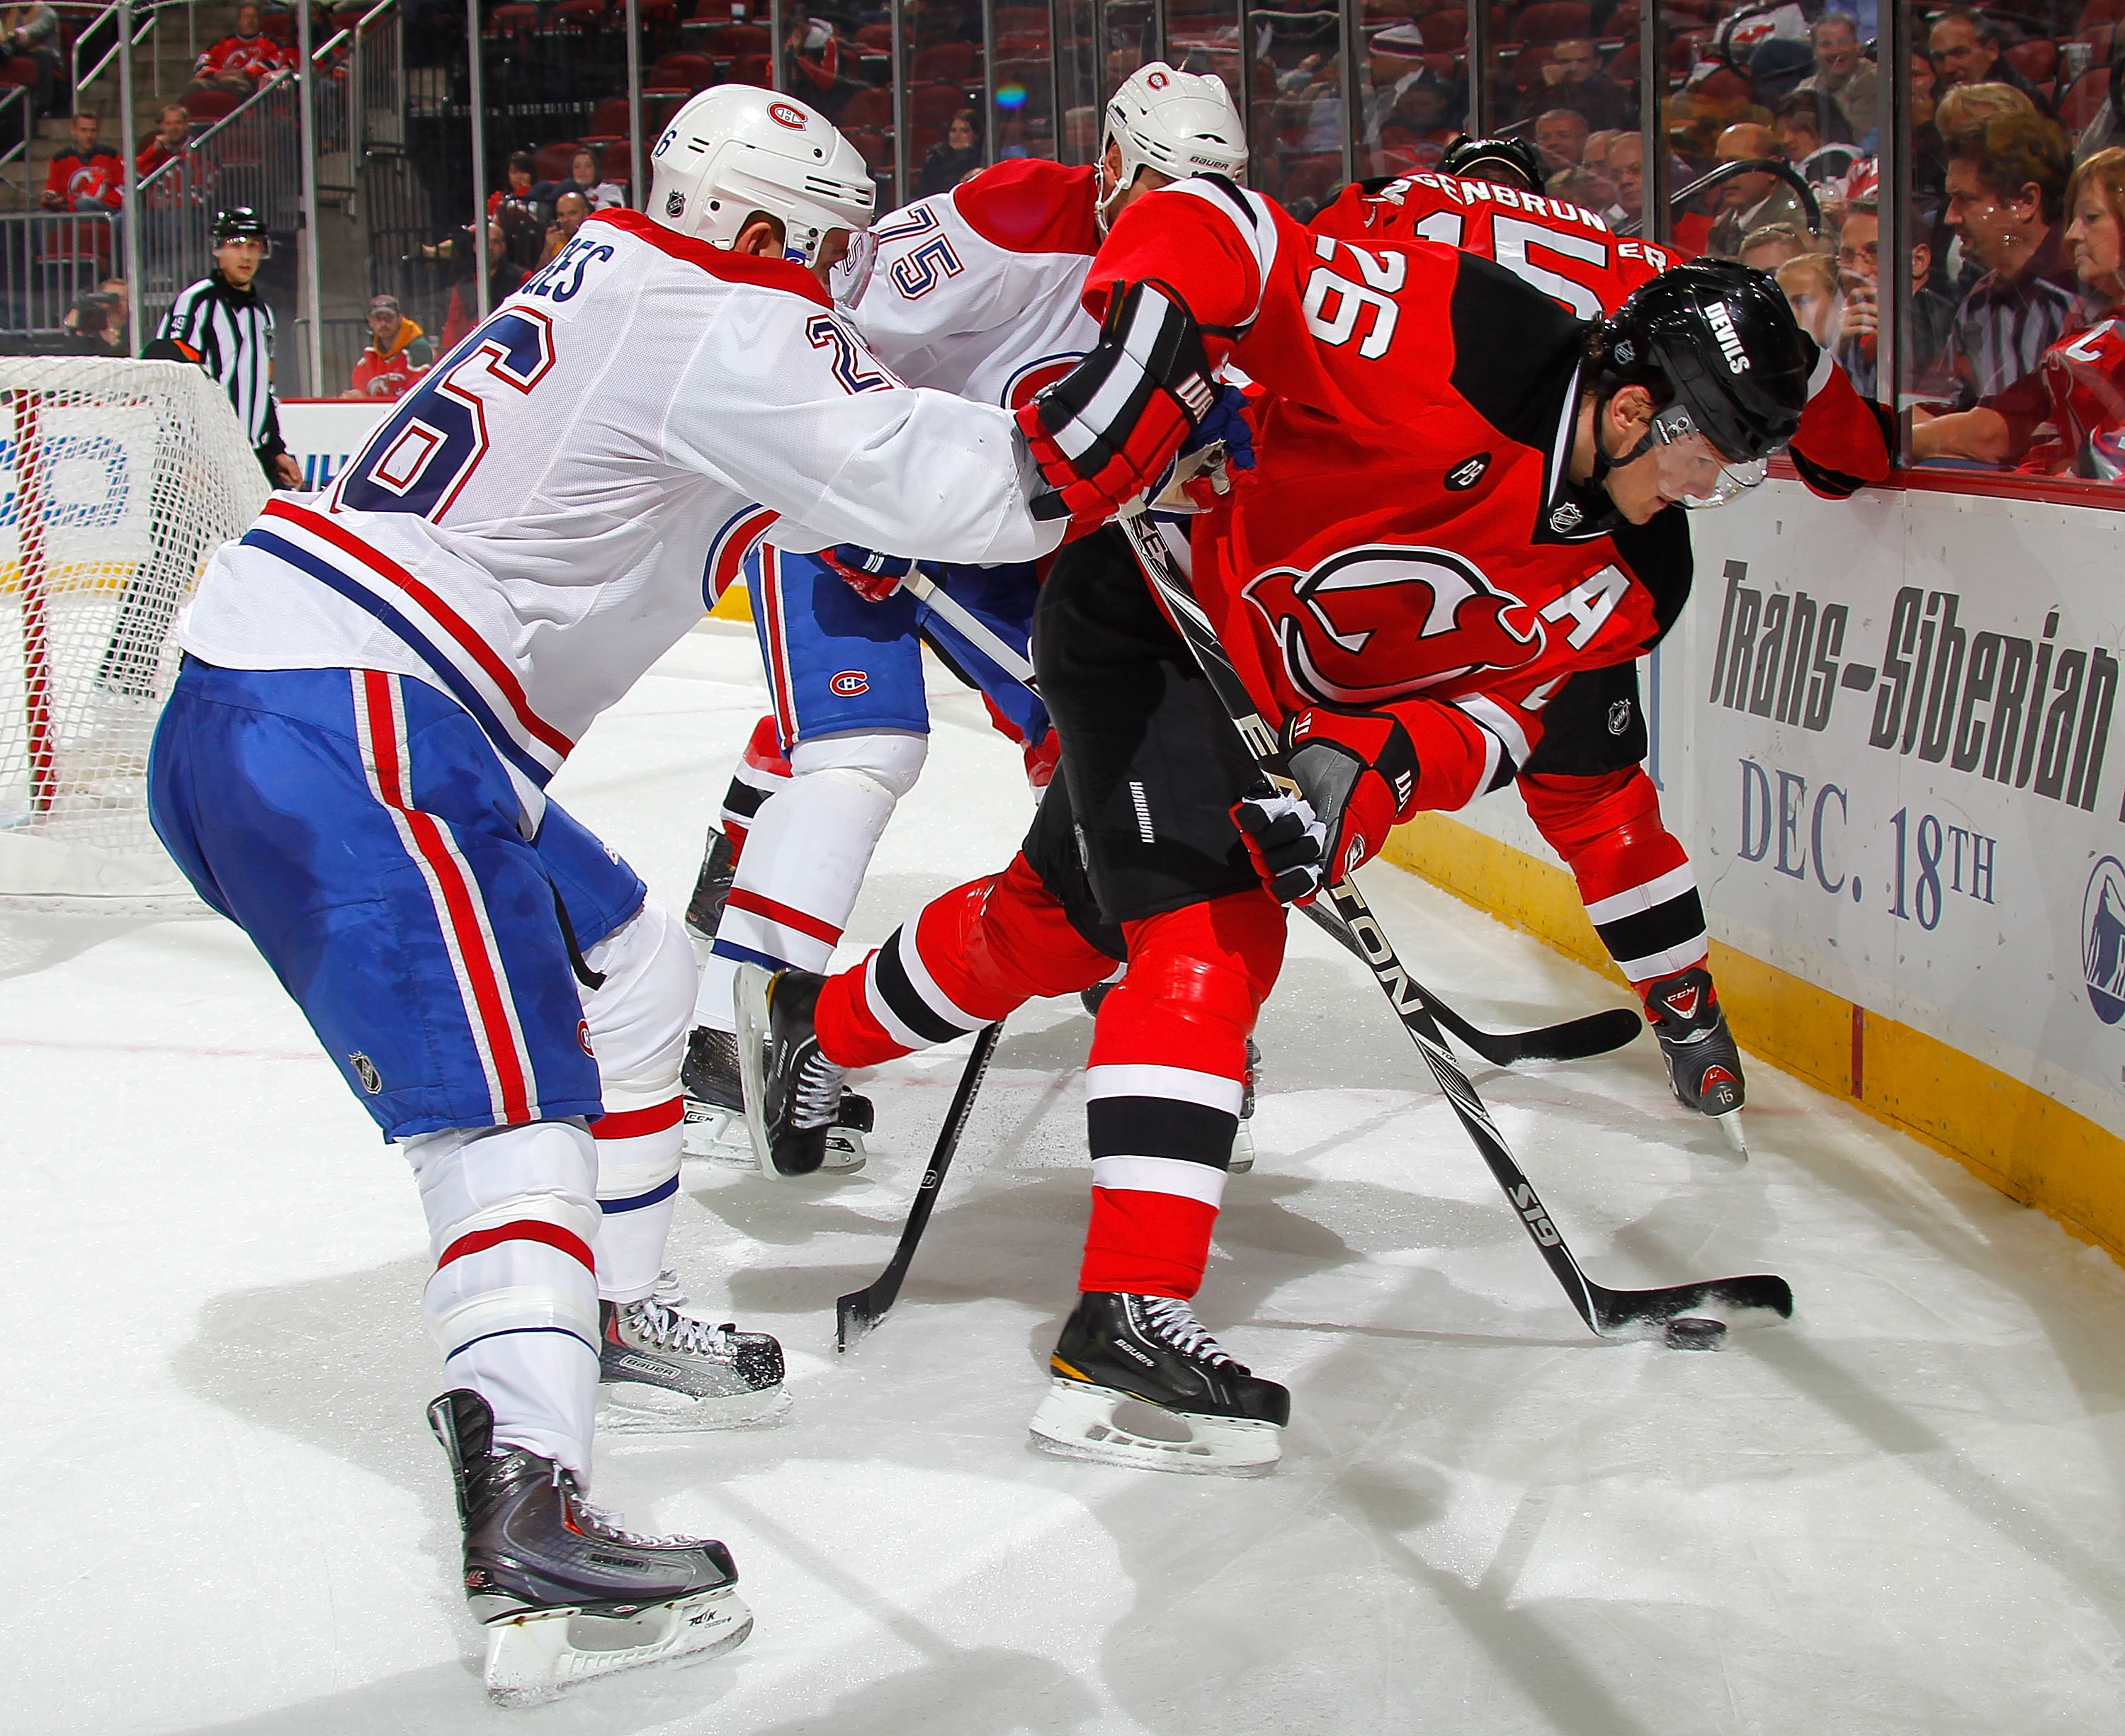 NEWARK, NJ - DECEMBER 02:  Josh Gorges #26 of the Montreal Canadiens checks Patrik Elias #26 of the New Jersey Devils during the second period of a hockey game at the Prudential Center on December 2, 2010 in Newark, New Jersey.  (Photo by Paul Bereswill/G